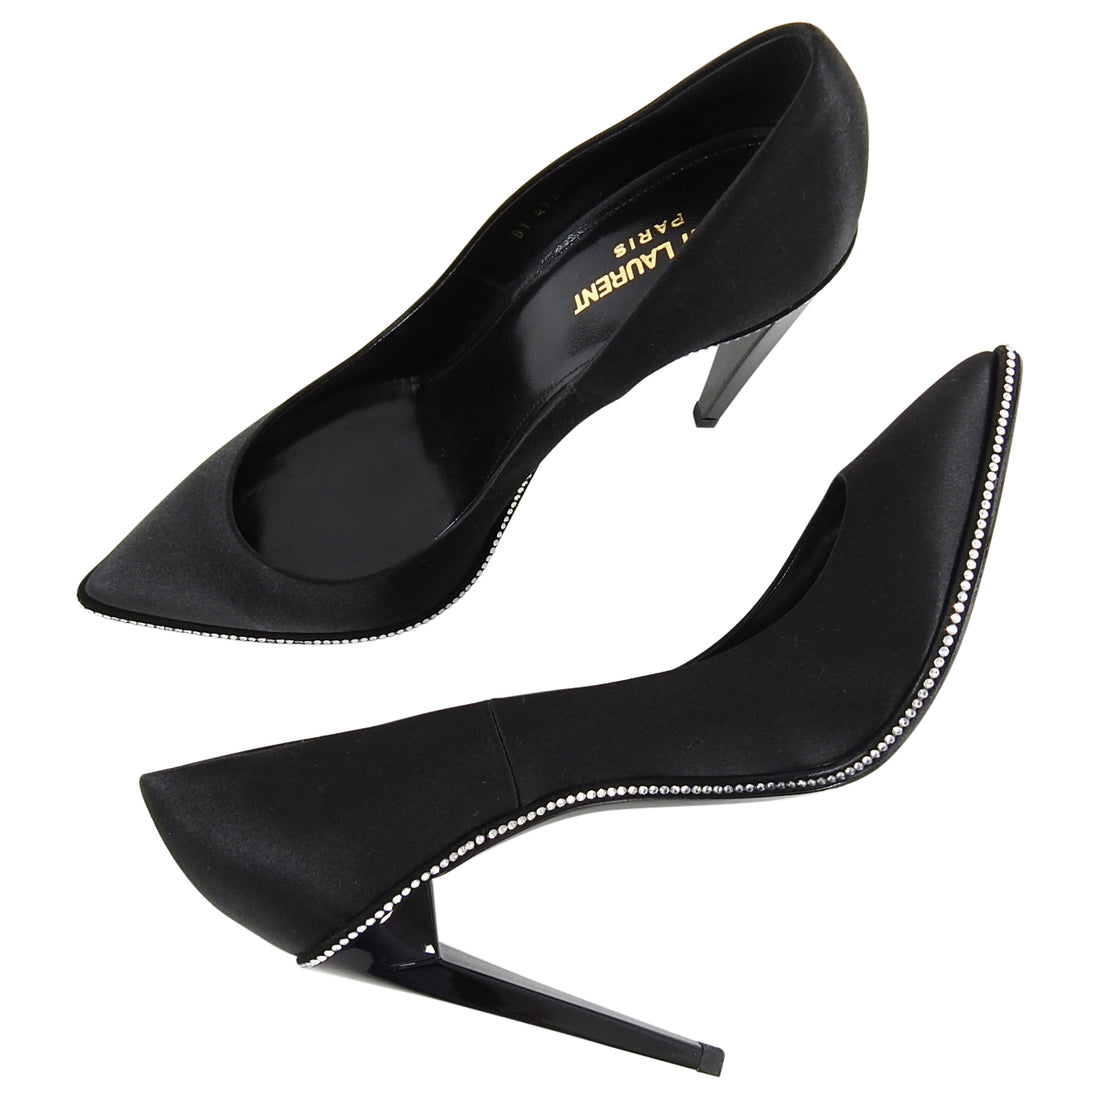 Saint Laurent Black Satin Rhinestone Trim Pumps Heels - 40